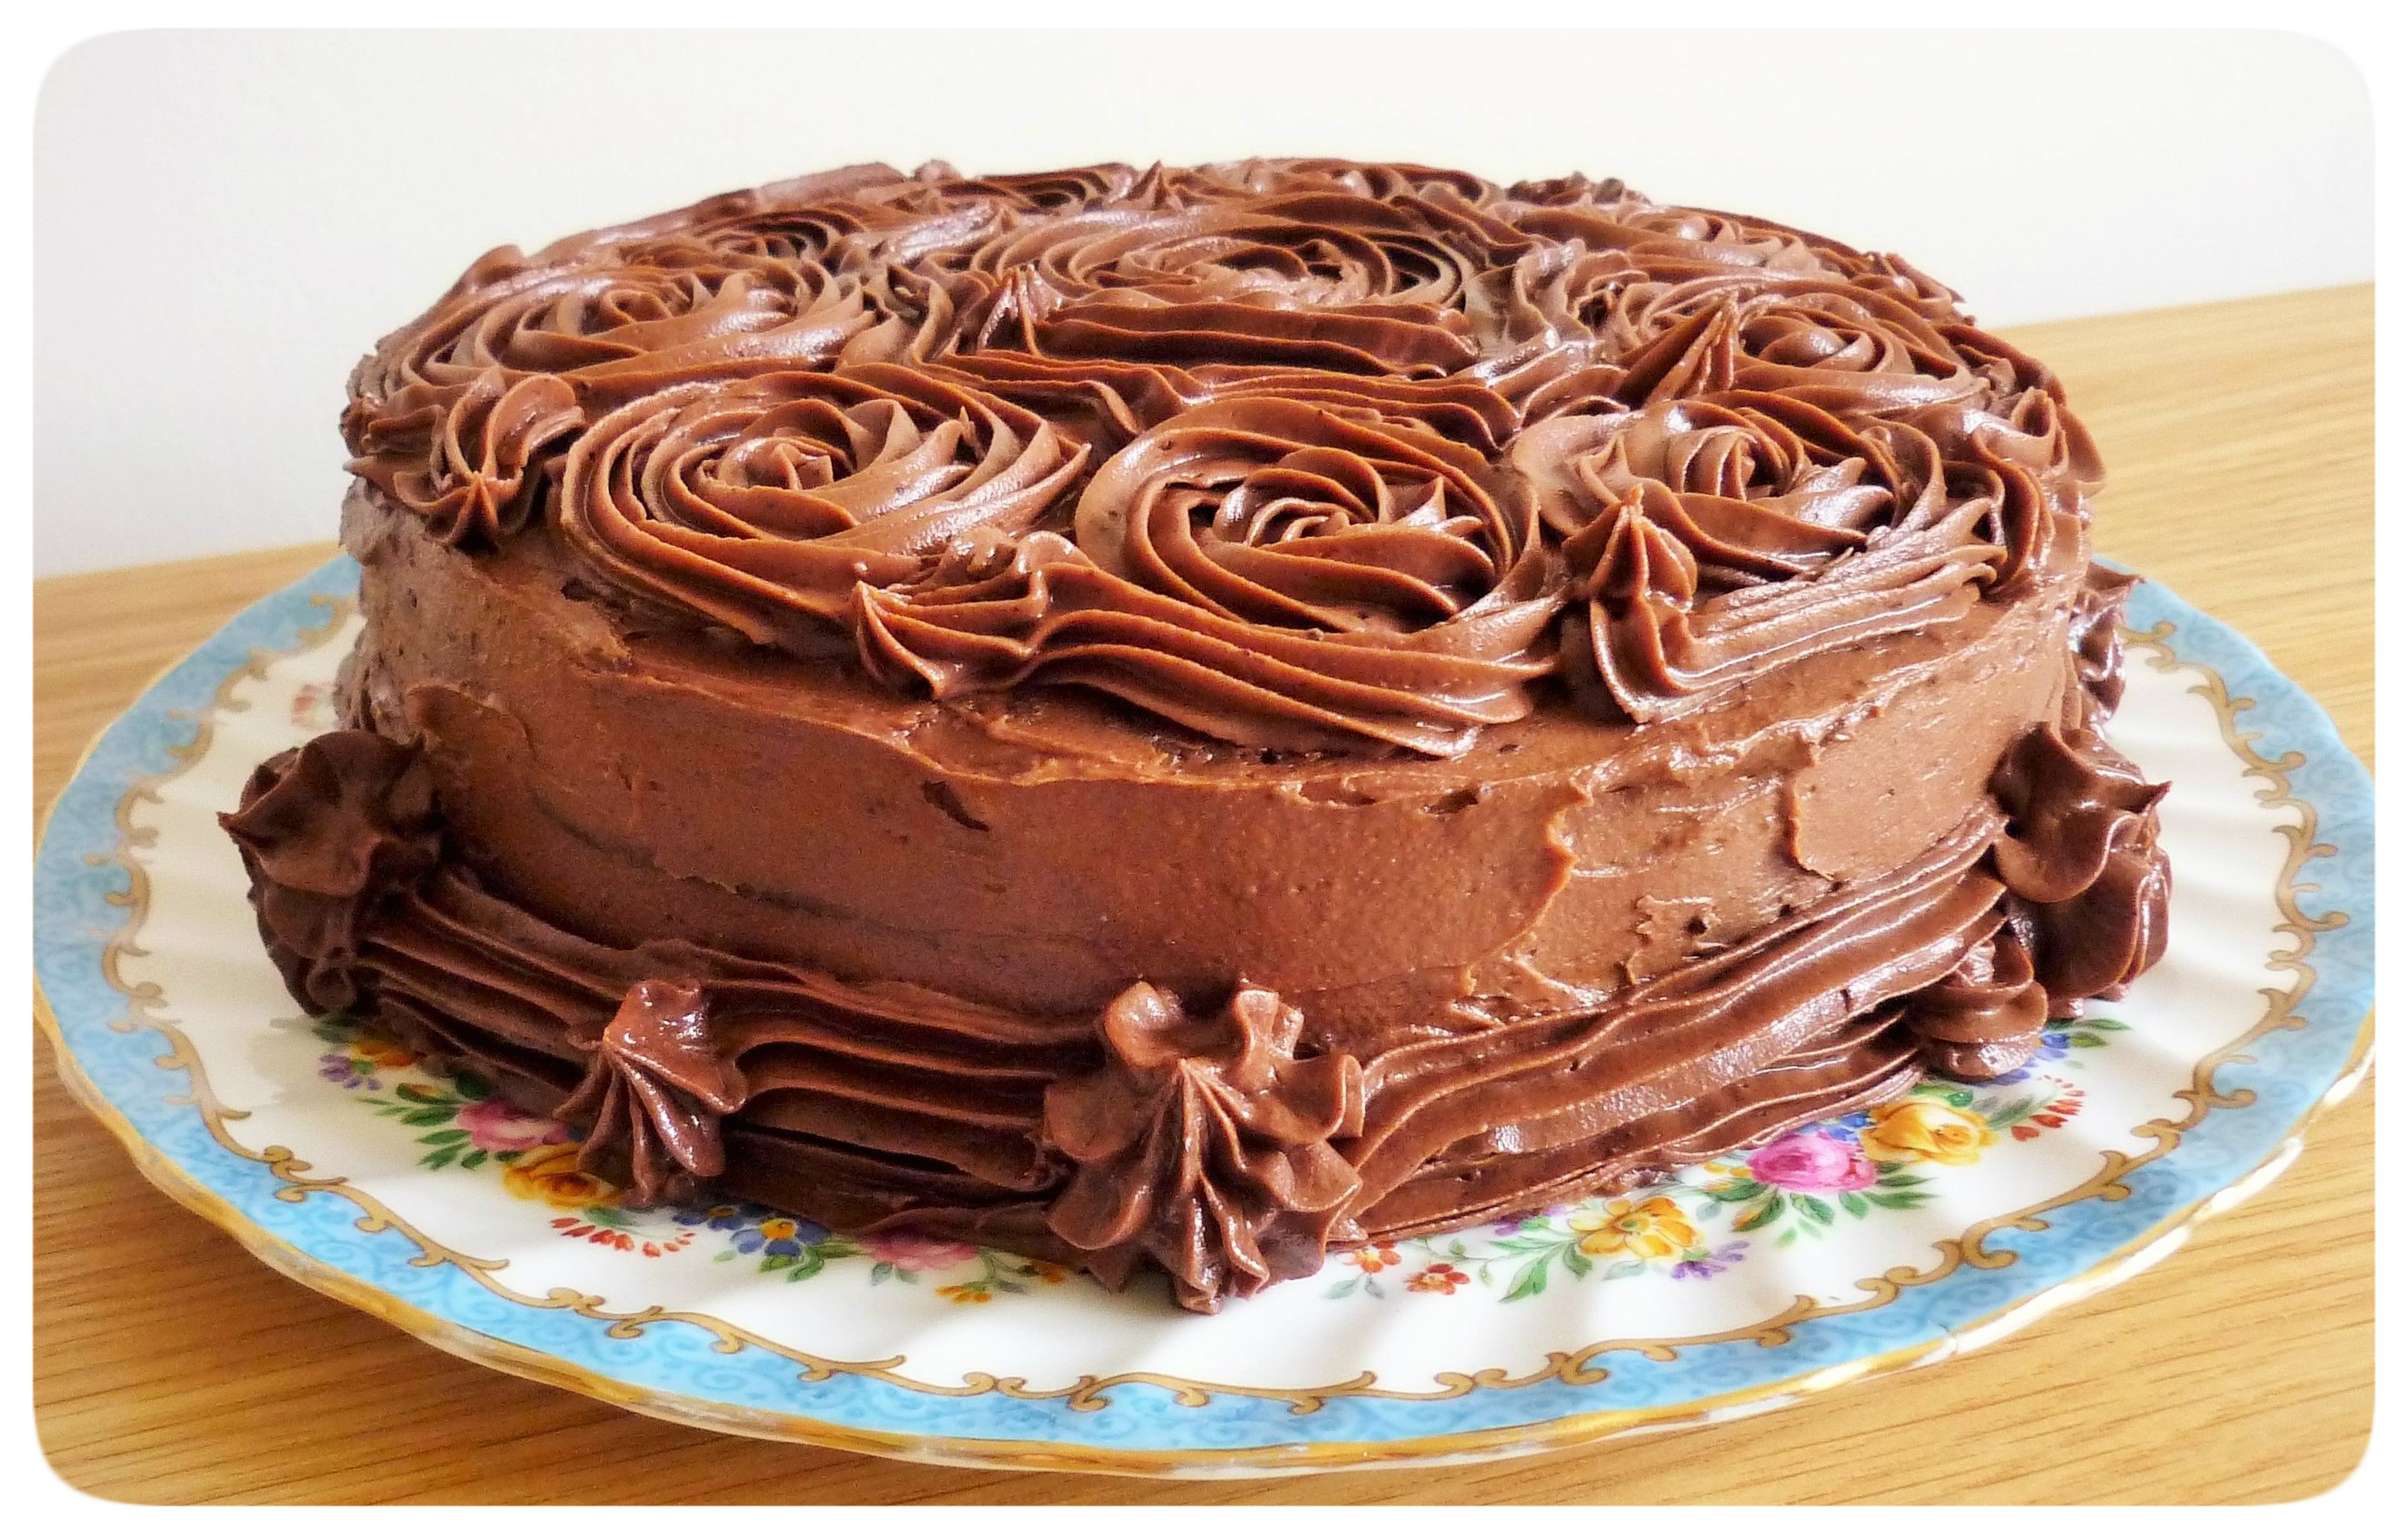 Cake With Icing In It : Recipe Chocolate fudge cake with chocolate buttercream ...